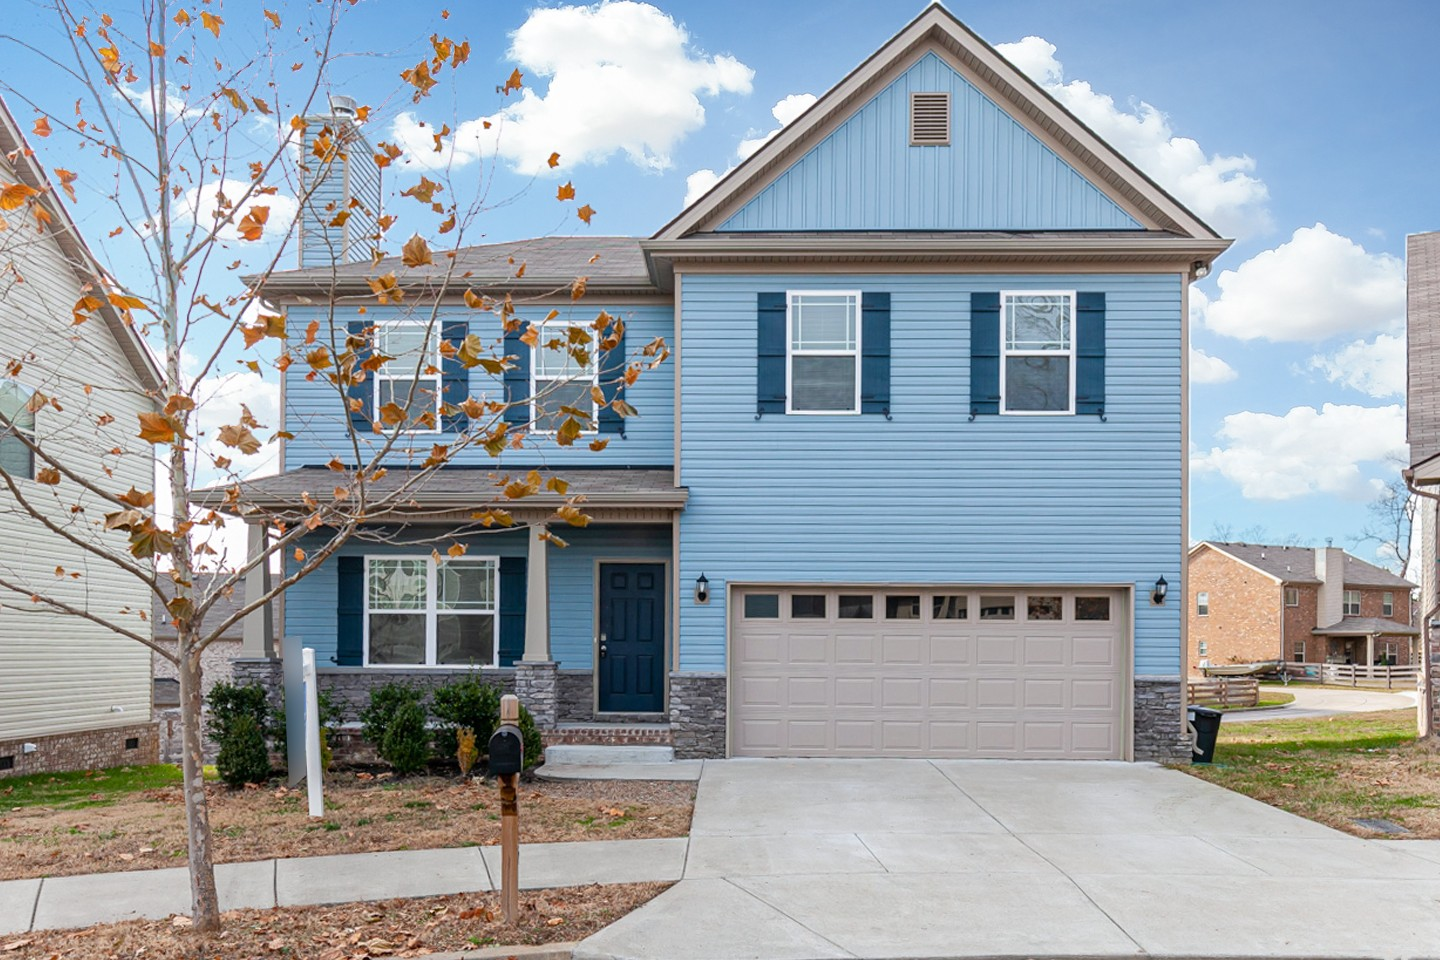 Built in 2017, this Fairview two-story cul-de-sac home offers granite countertops and a two-car garage. This home is vacant and cleaned regularly.